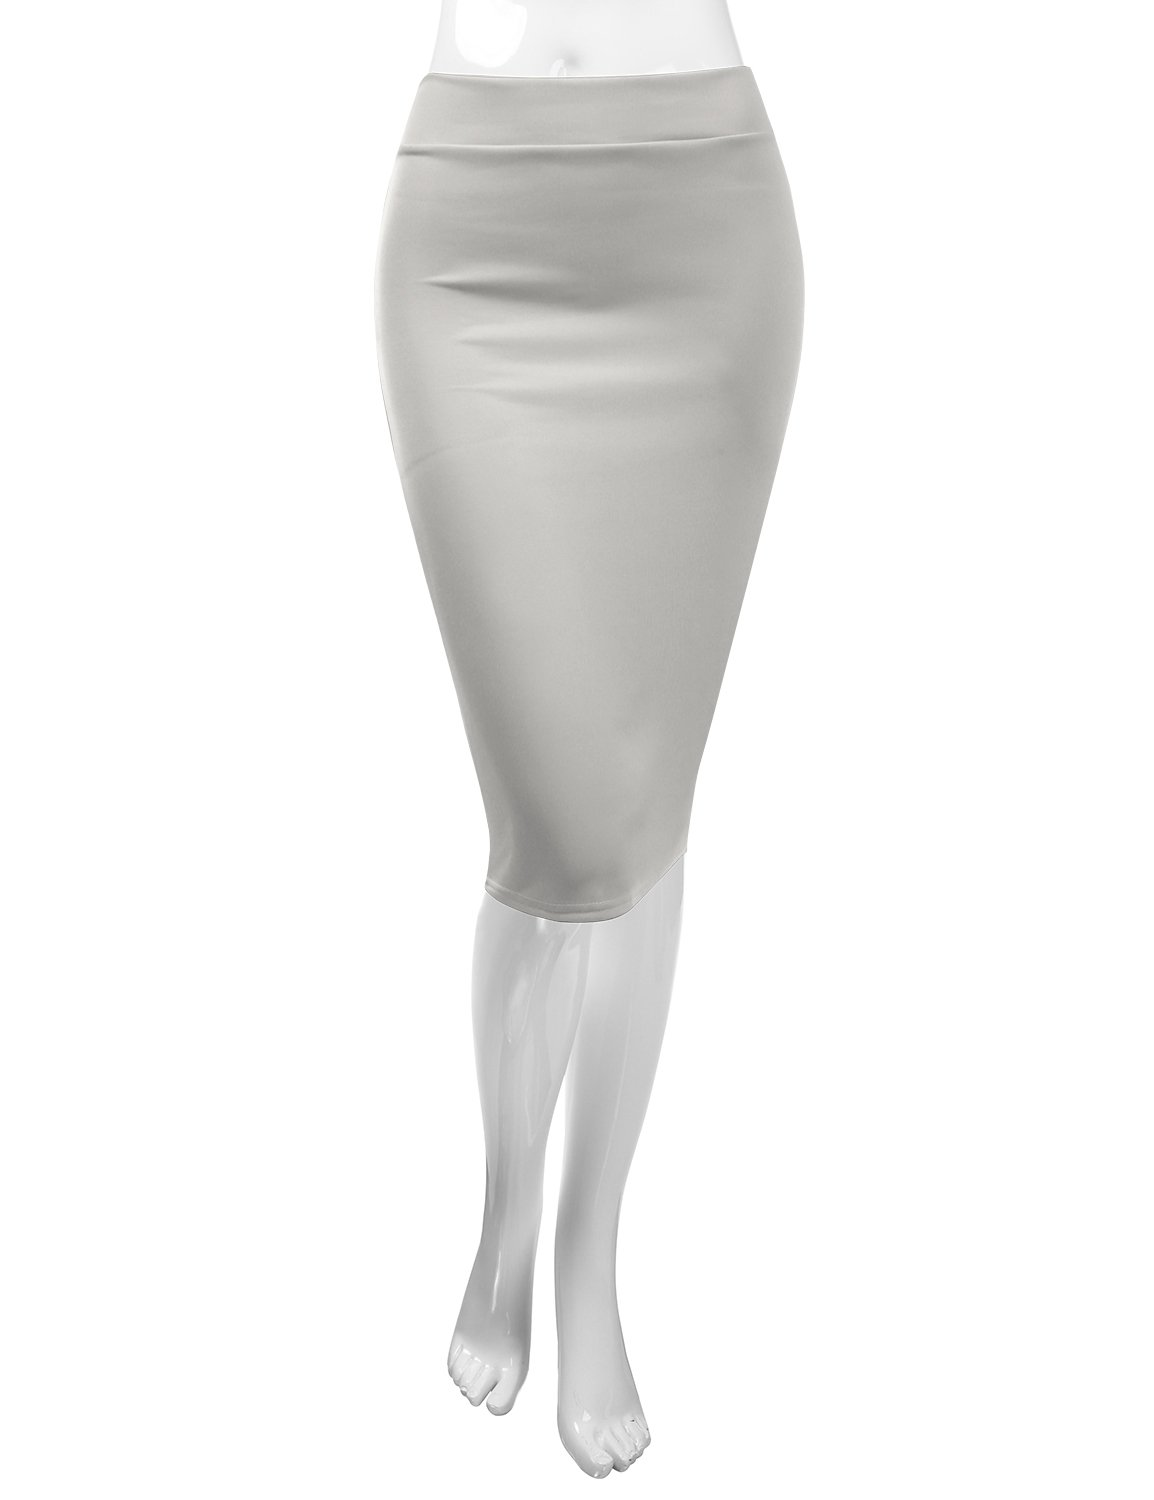 CLOVERY Pencil Skirts Plus Size Casual Skirt Elastic Waist Band Scuba Streychy Solid Color Grey L by CLOVERY (Image #4)